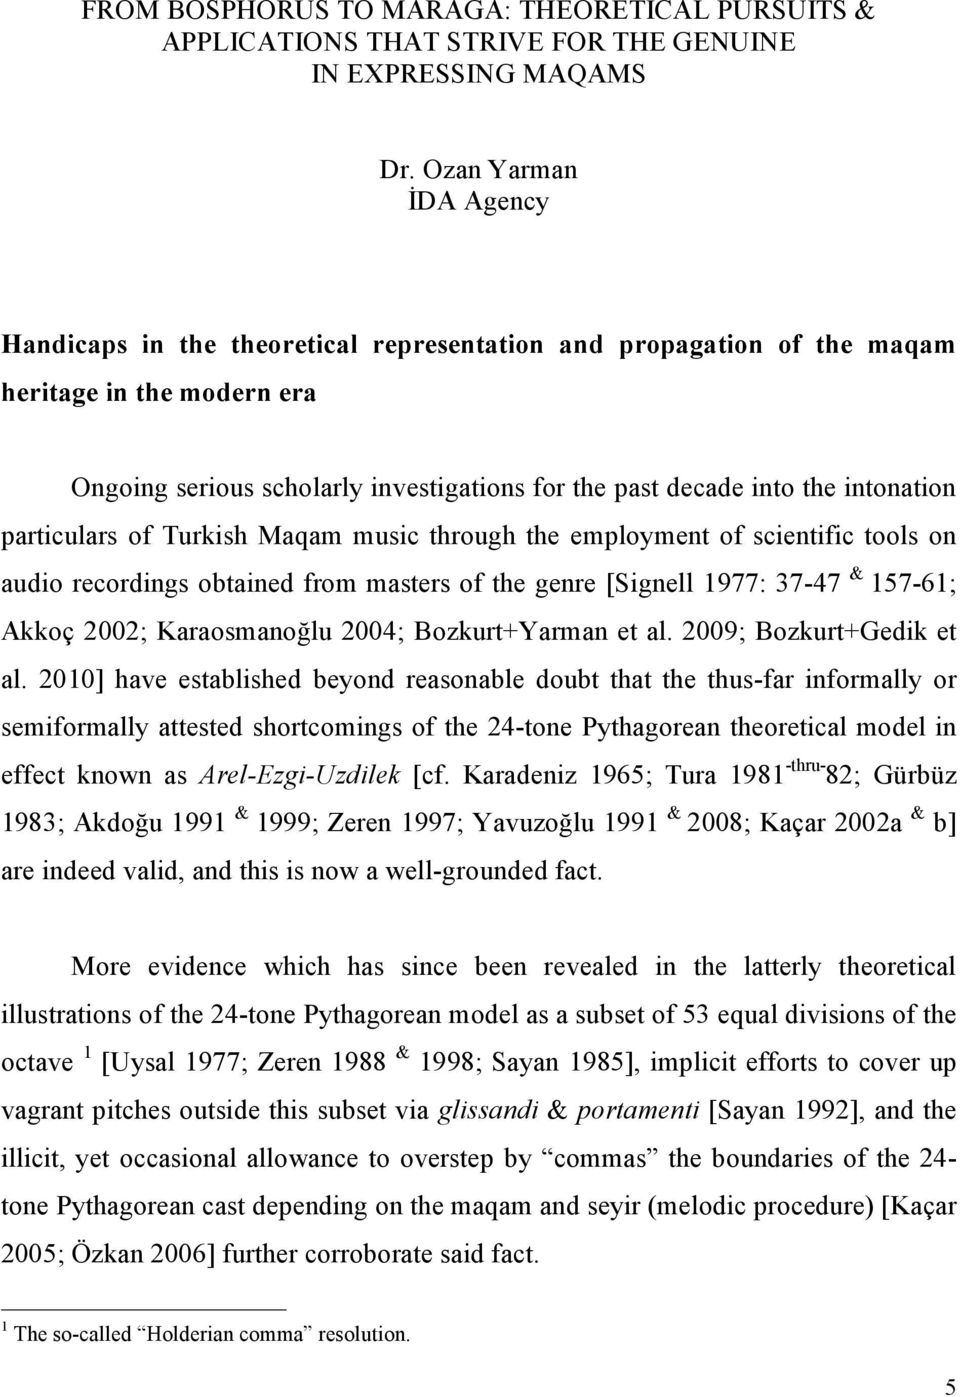 intonation particulars of Turkish Maqam music through the employment of scientific tools on audio recordings obtained from masters of the genre [Signell 1977: 37-47 & 157-61; Akkoç 2002;